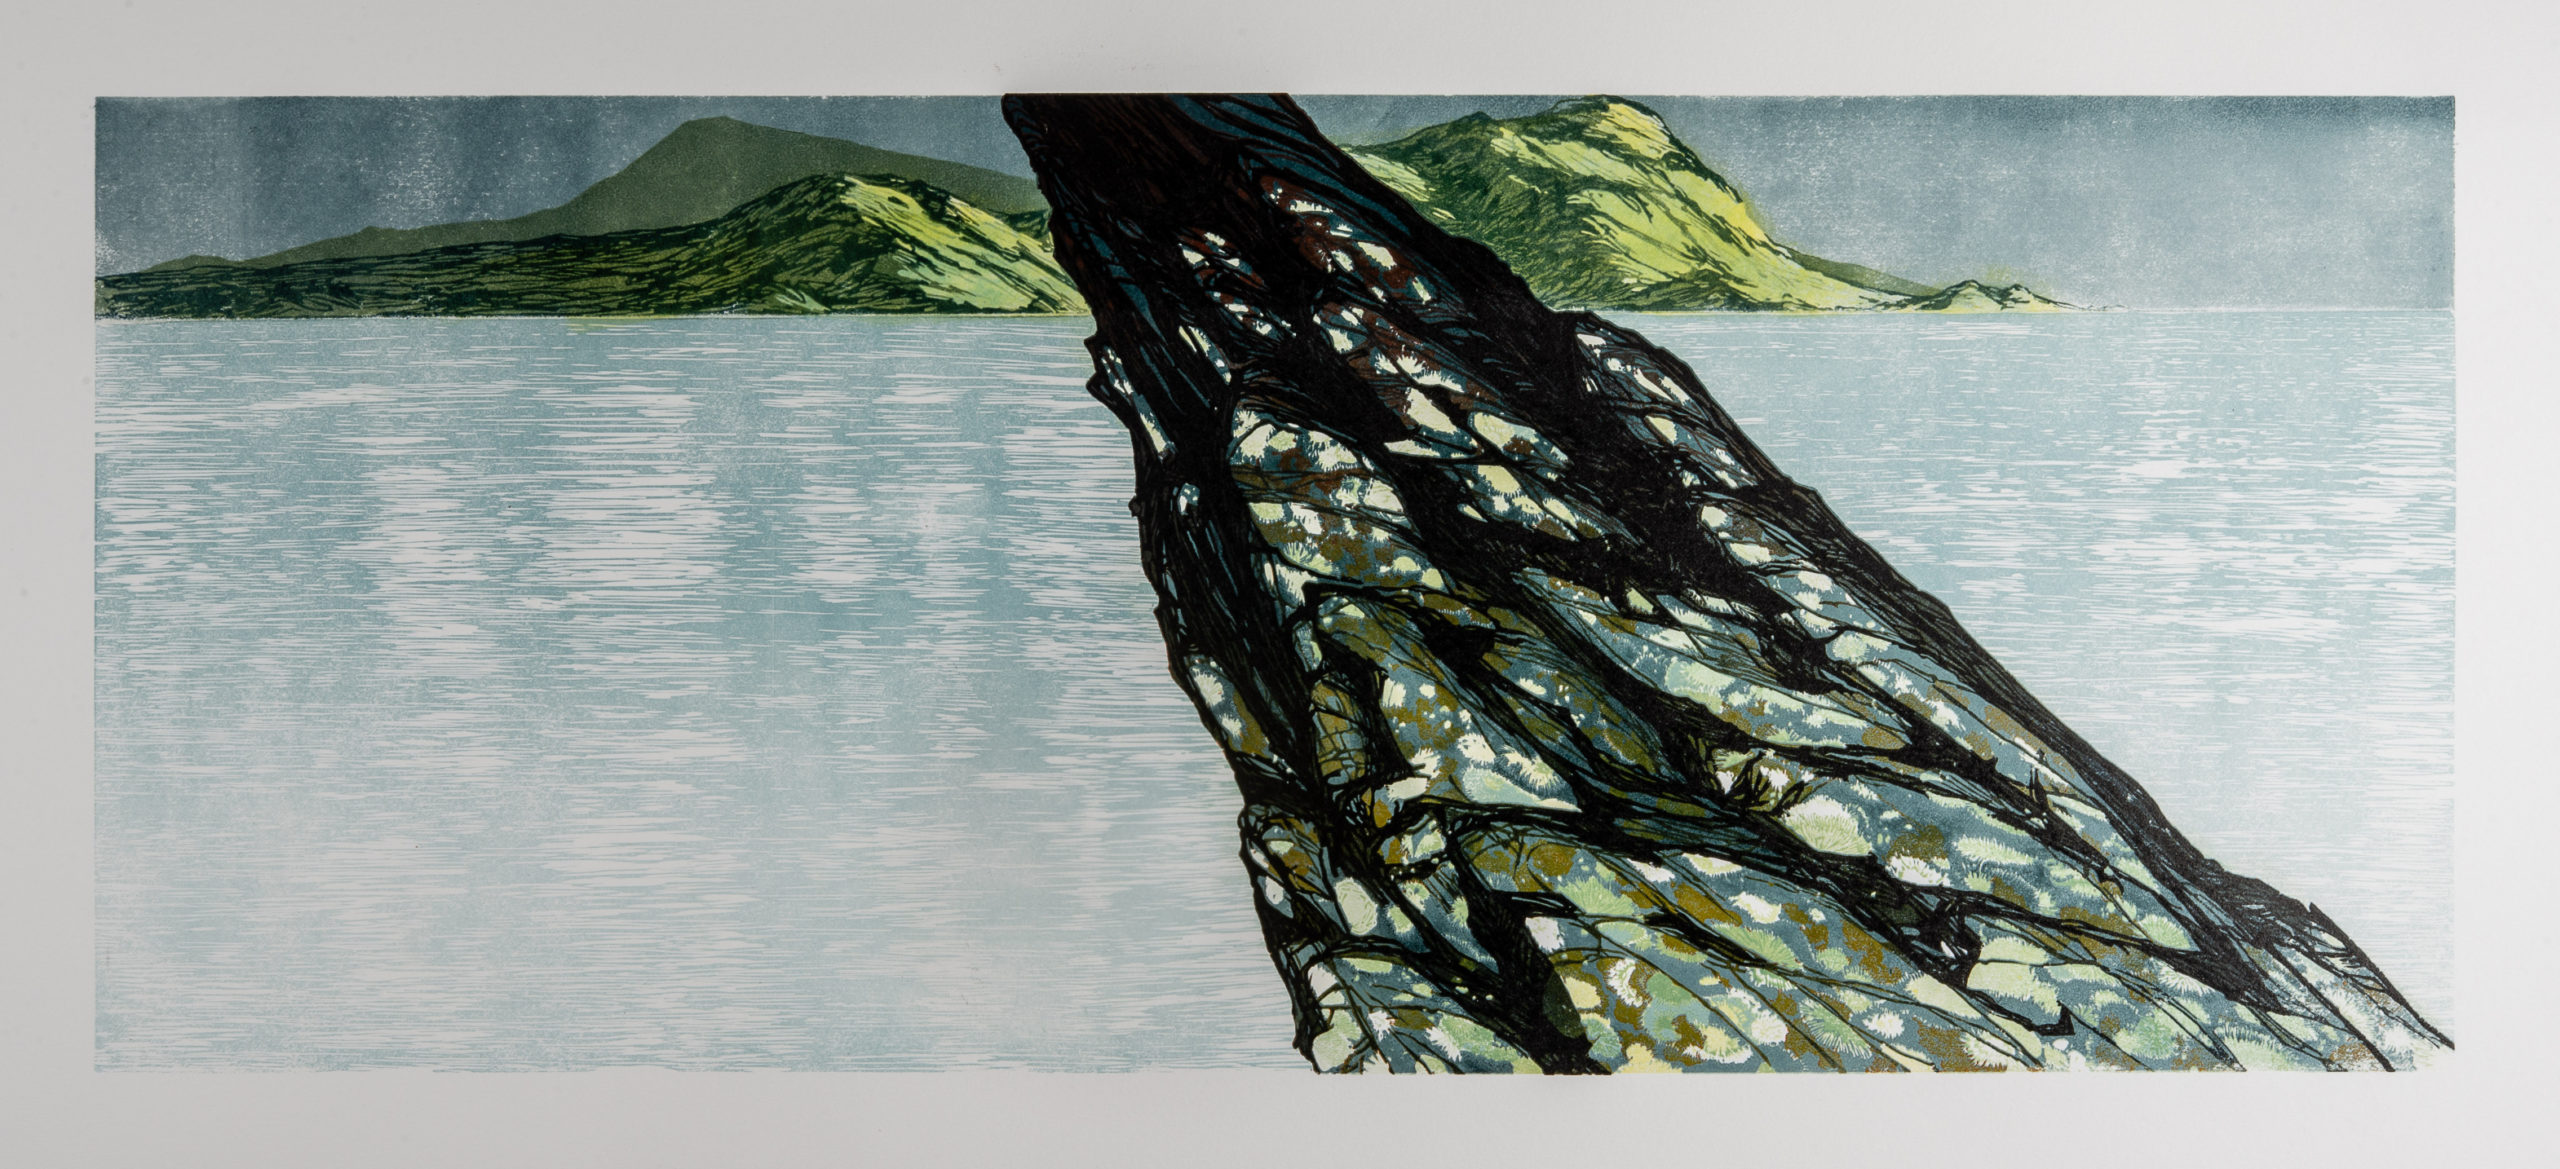 Laura Boswell. Outcrop (Linocut - 700 x 290 mm)